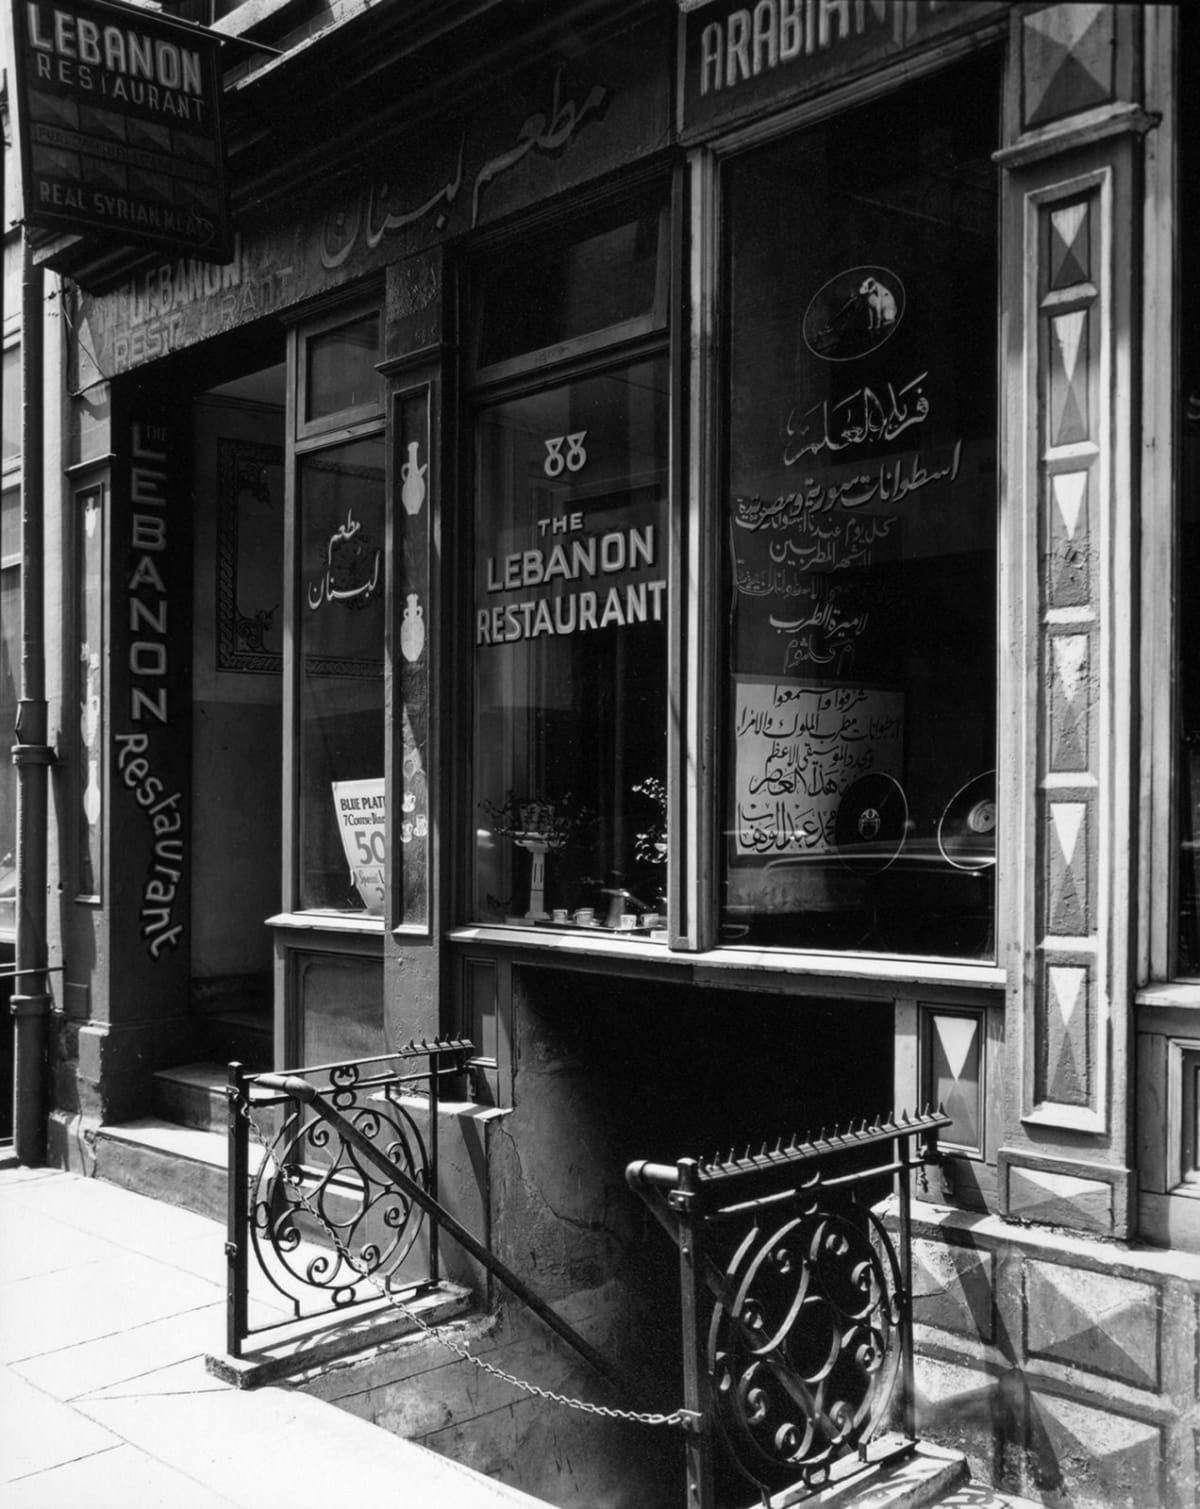 "Berenice Abbott The Lebanon Restaurant, New York City, 1936 (Printed 1982) Gelatin Silver Print Image - 15.5""x19"", Matted - 24""x30"""